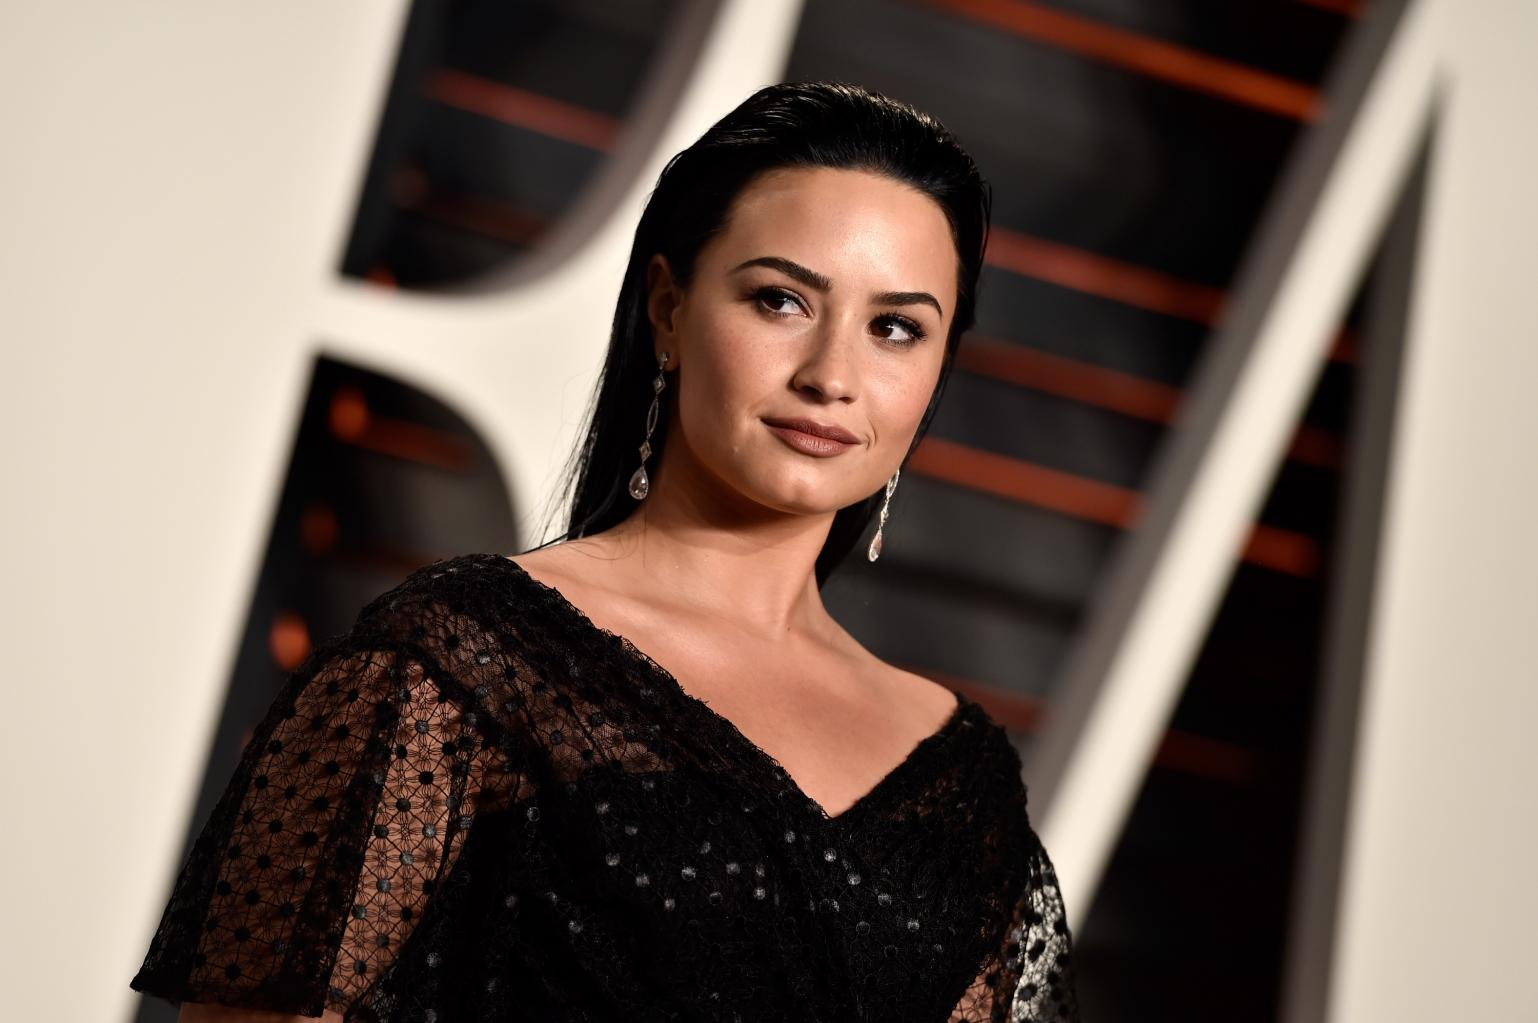 Demi Lovato Apologizes After Seemingly Laughing At Zika Virus